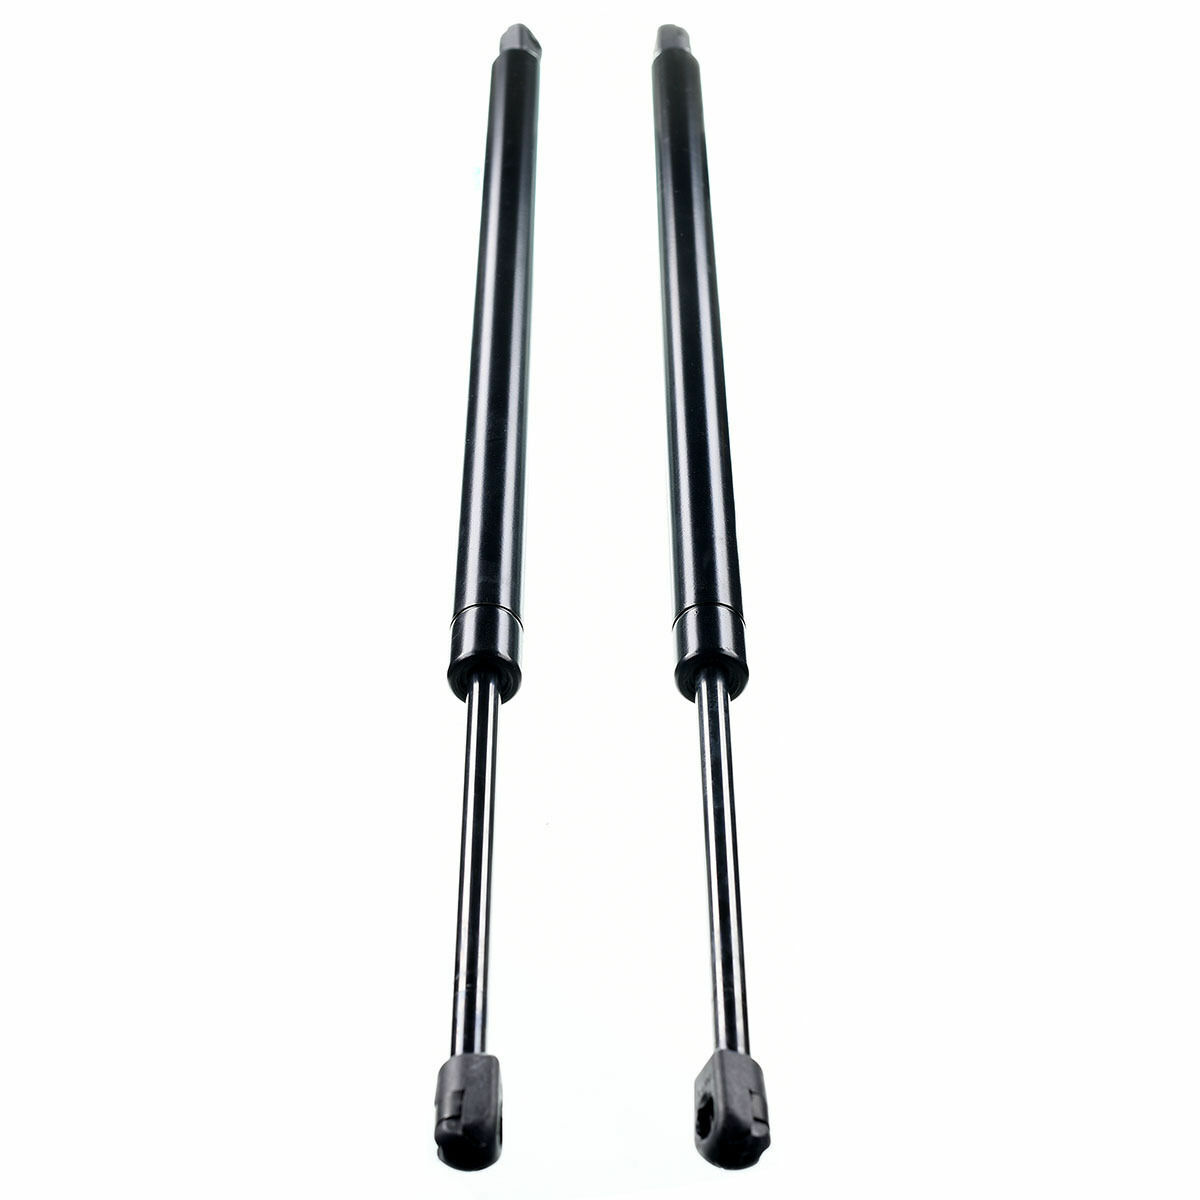 2 Pcs Tailgate Lift Support Shock Struts For Ford